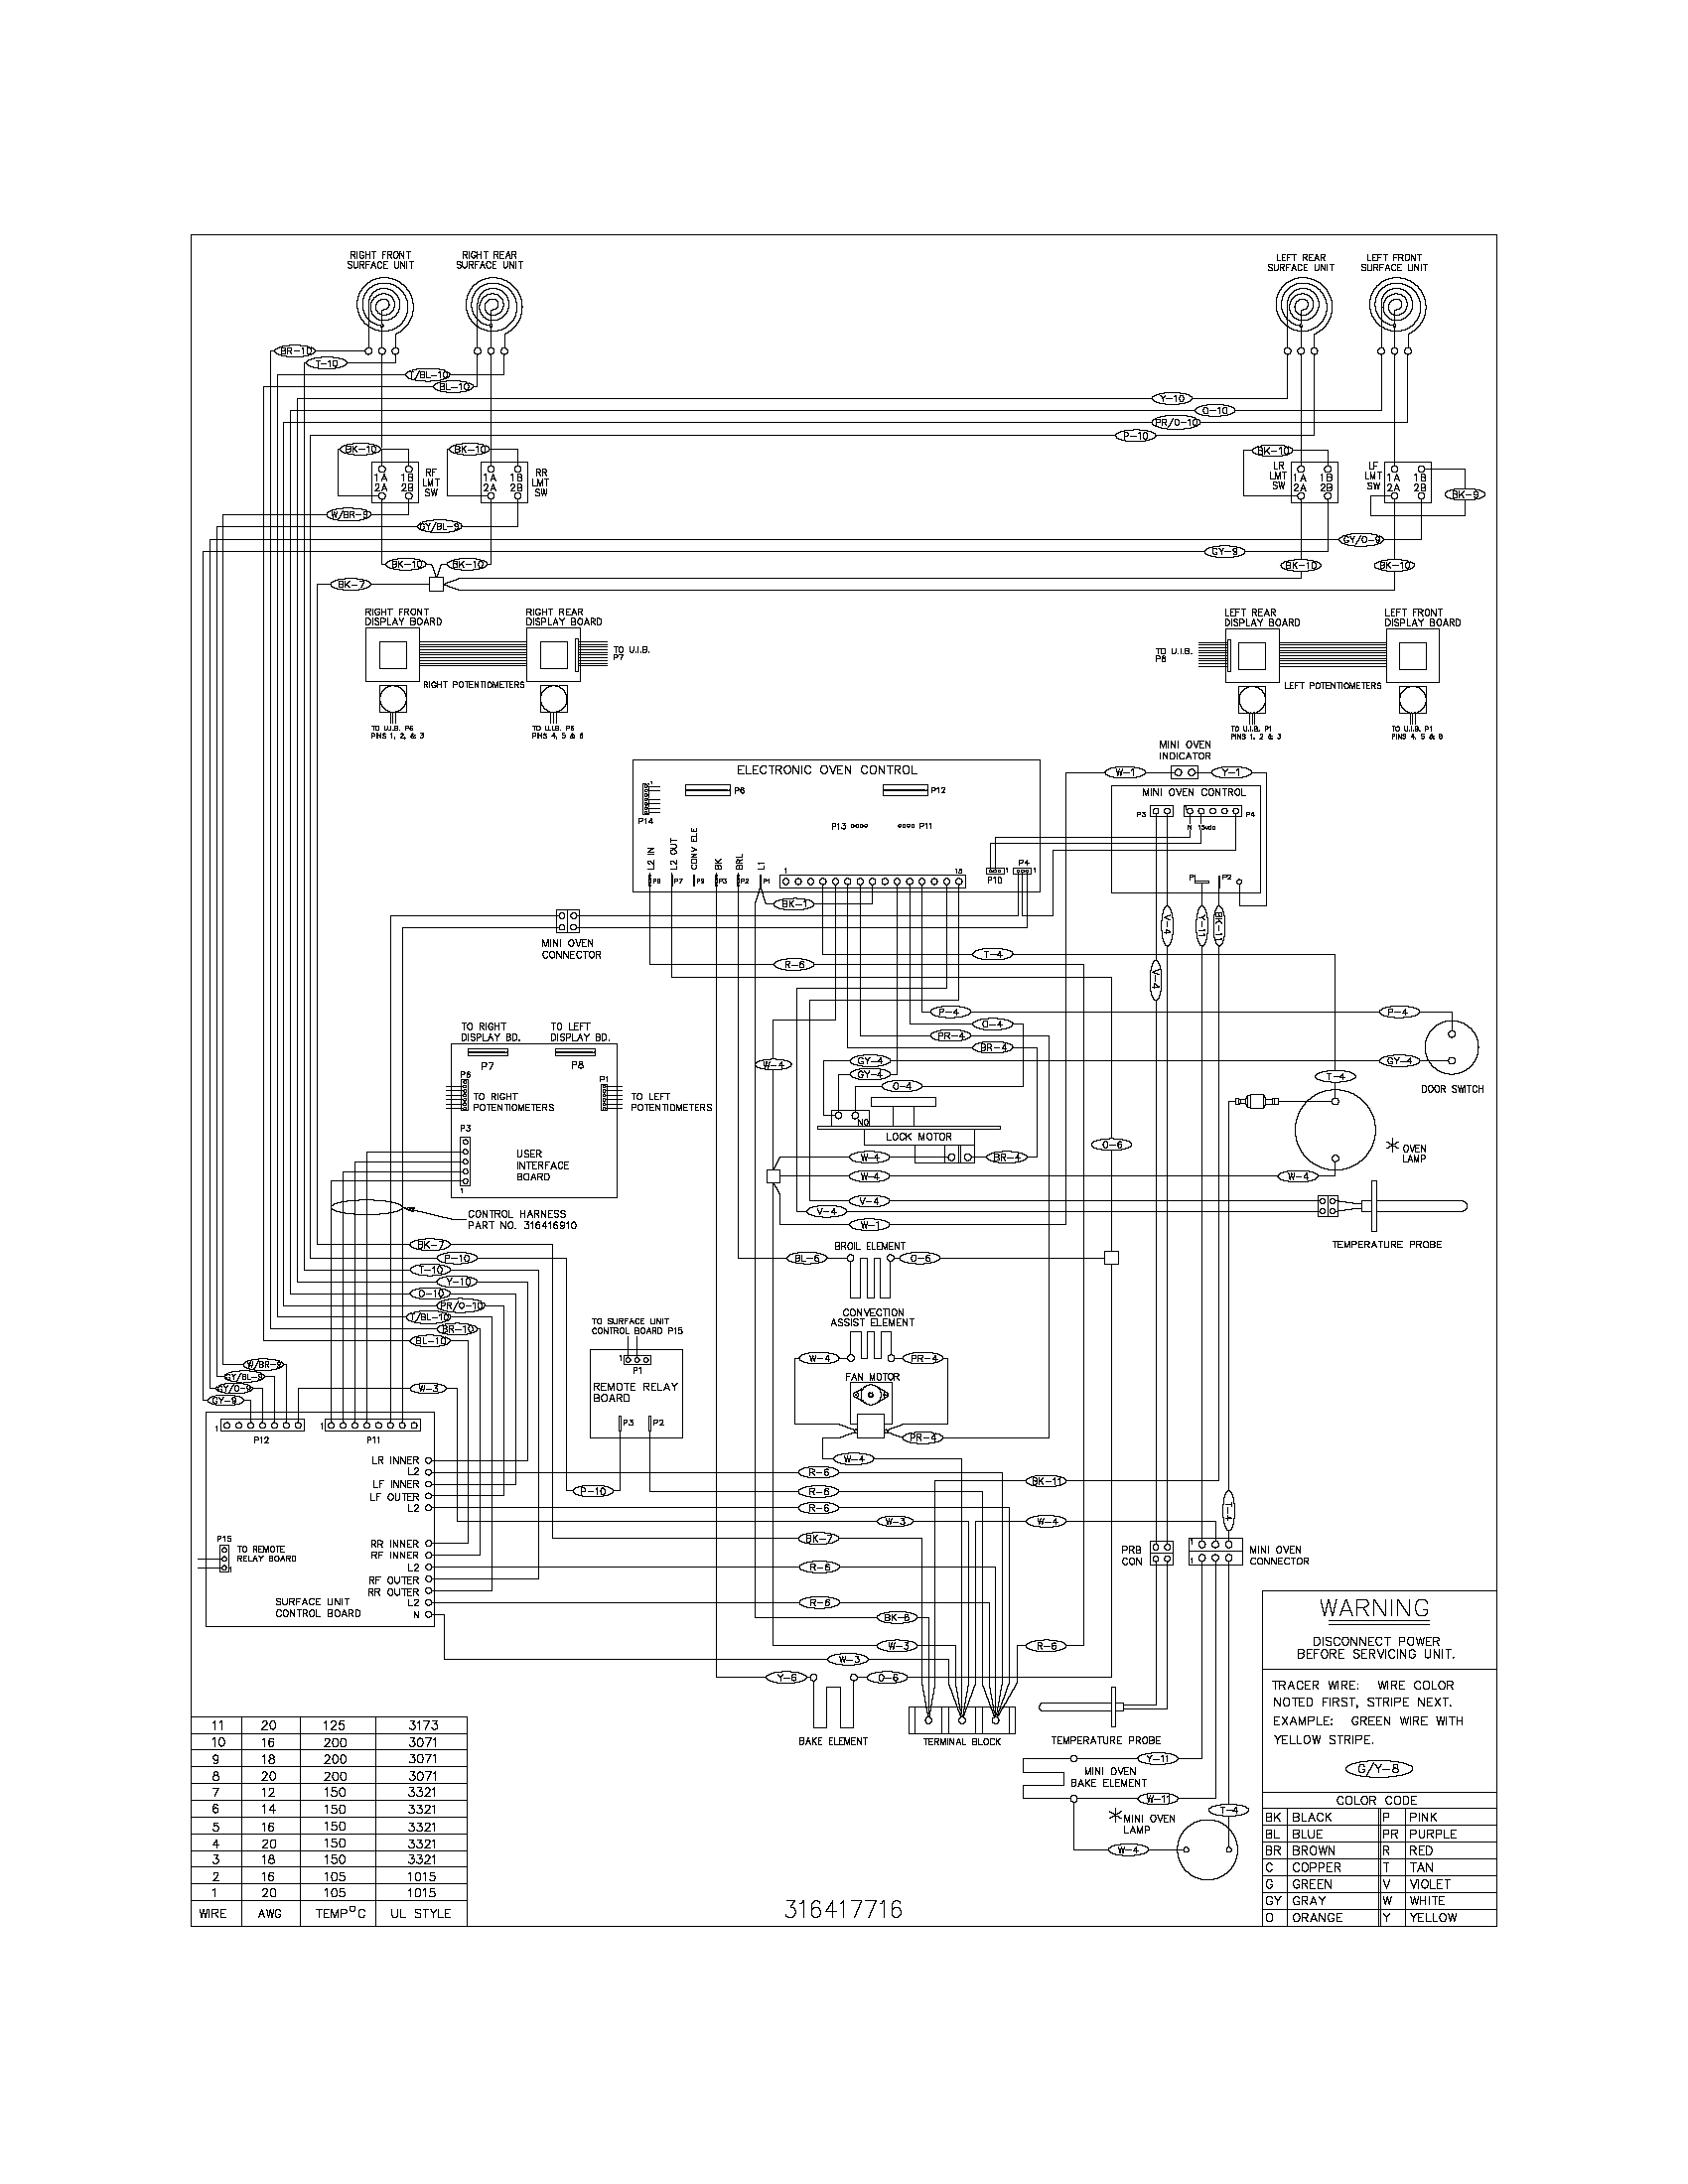 wiring diagram parts odes wiring diagram e z go wiring diagram \u2022 wiring diagrams j oliver 1850 wiring diagram at mifinder.co